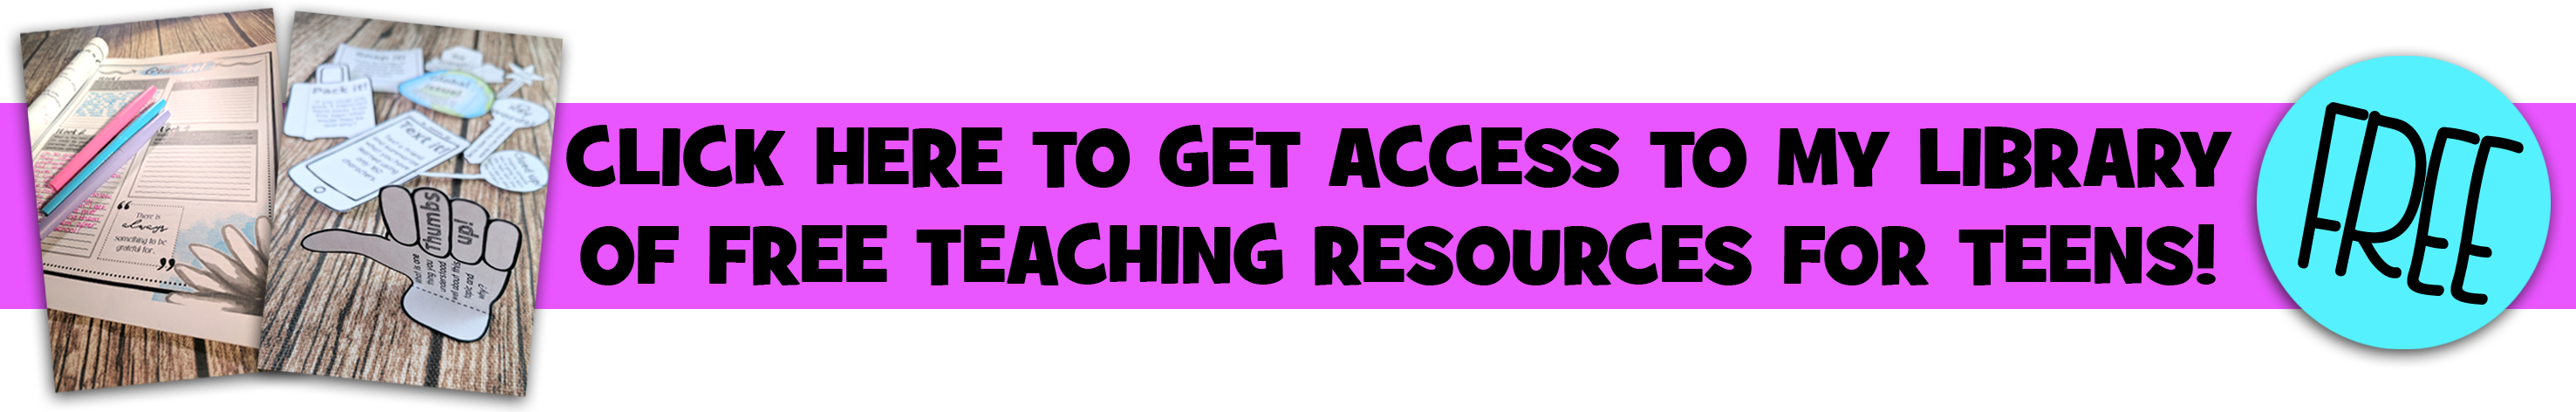 Free teaching resources for teens @resourceforce